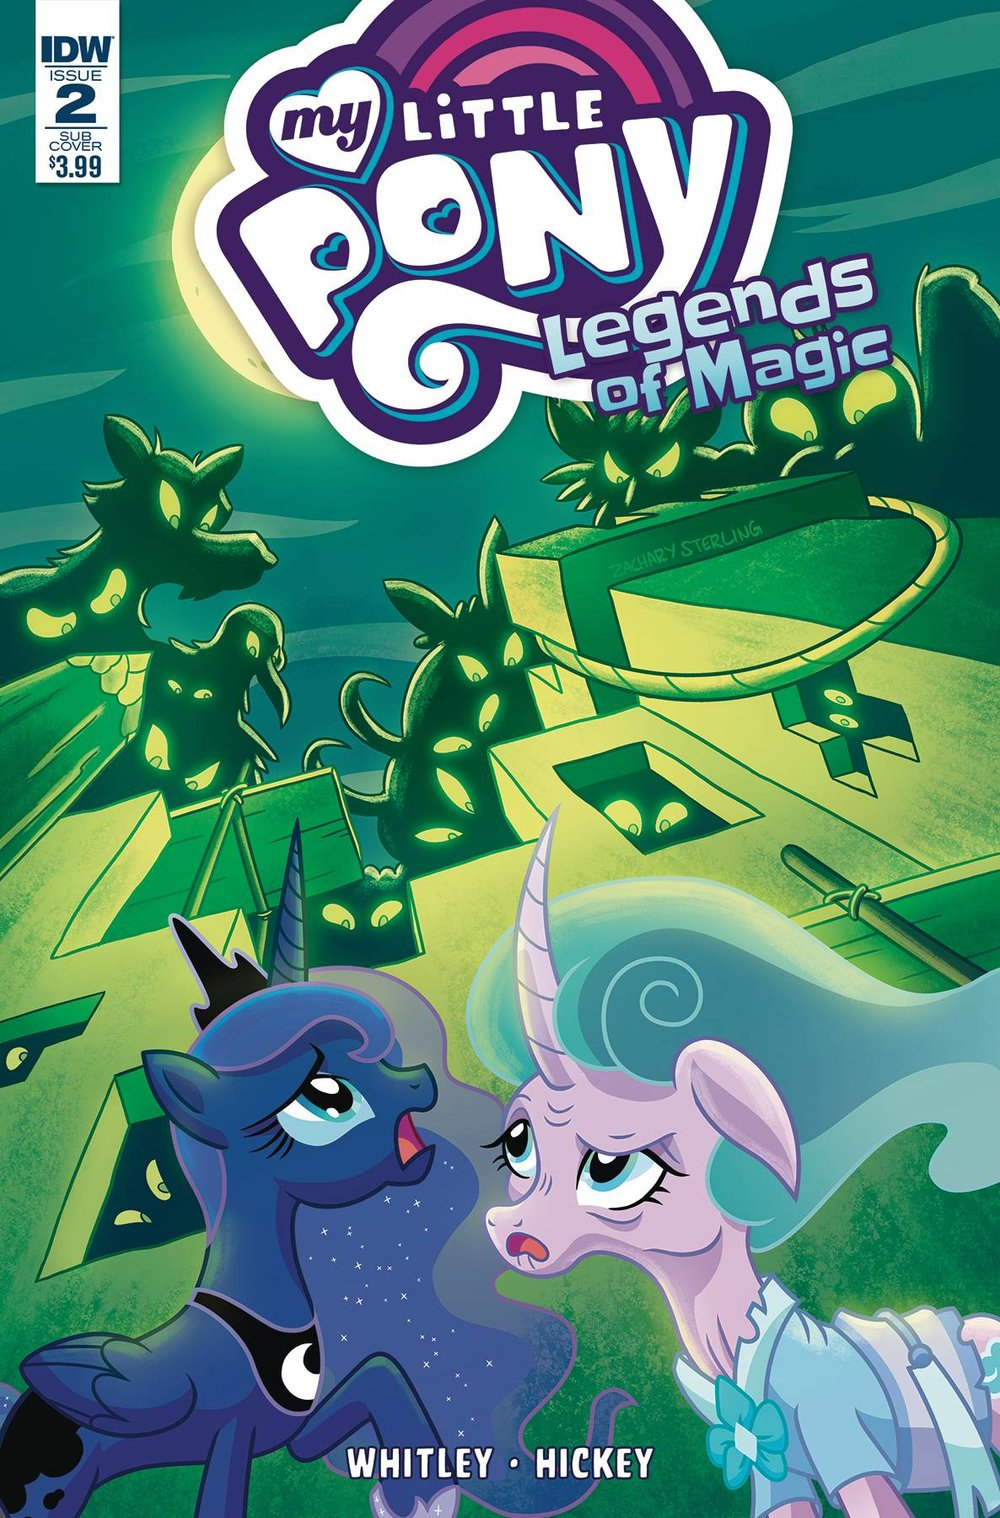 MY LITTLE PONY LEGENDS OF MAGIC 2 SUBSCRIPTION VAR.jpg